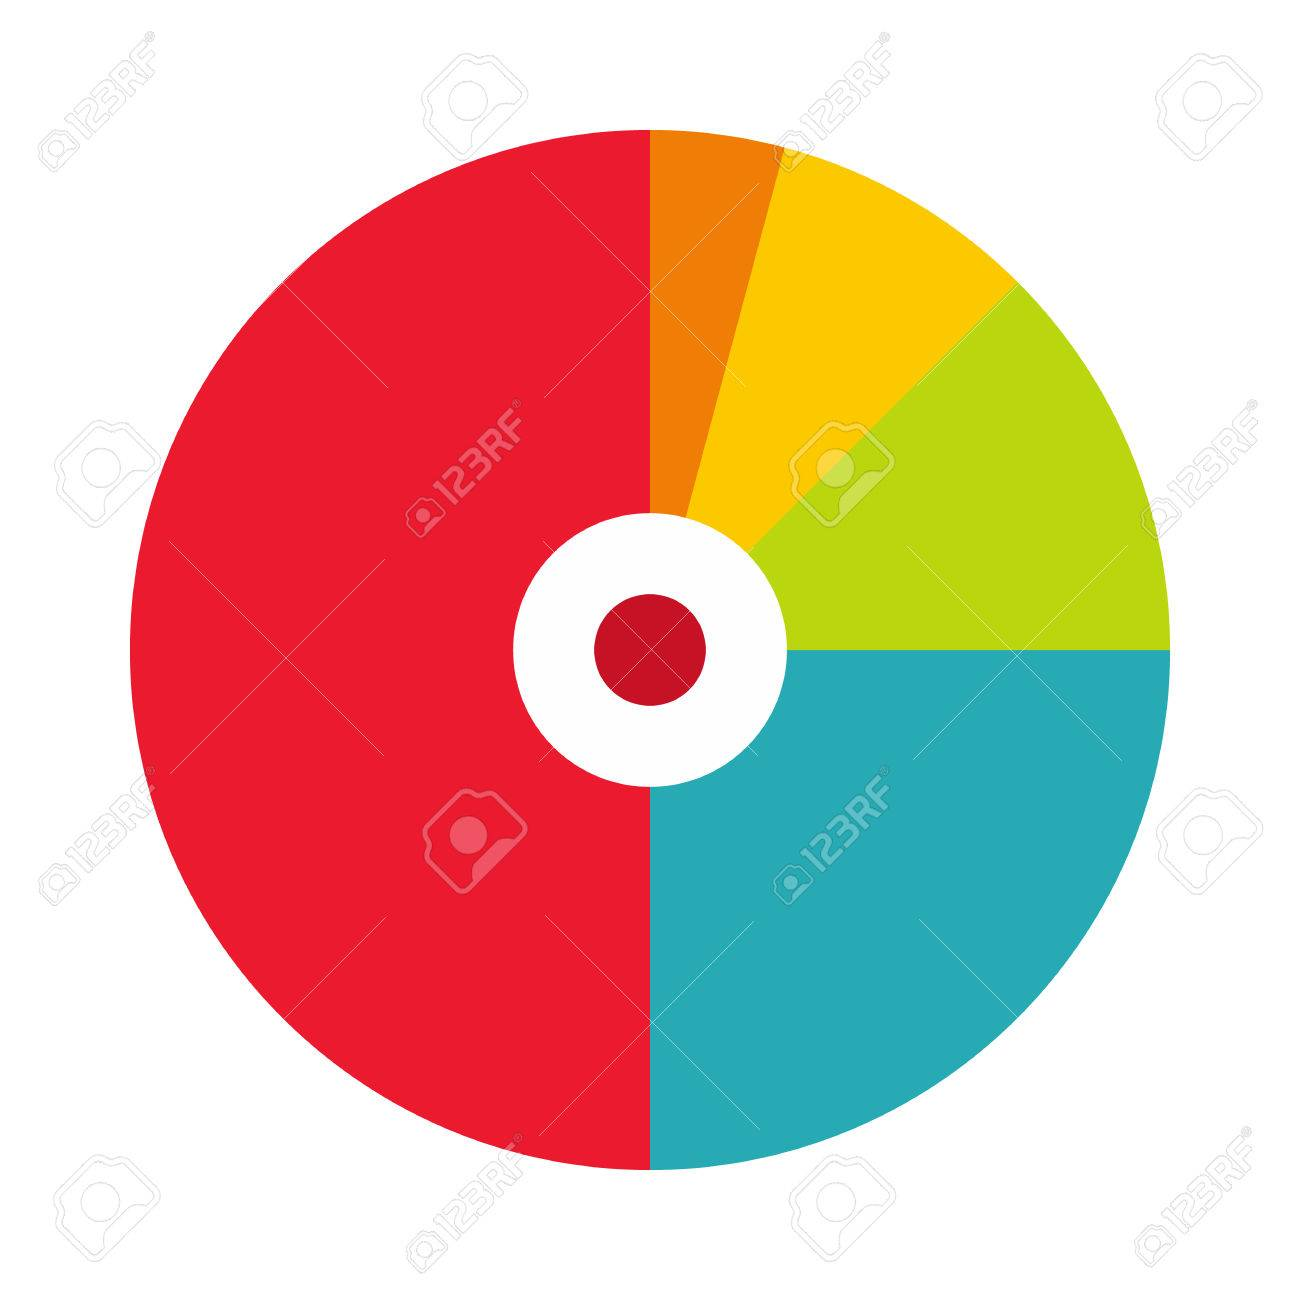 Pie chart with a hole in the center icon in flat style on a white background Banque d'images - 53345293